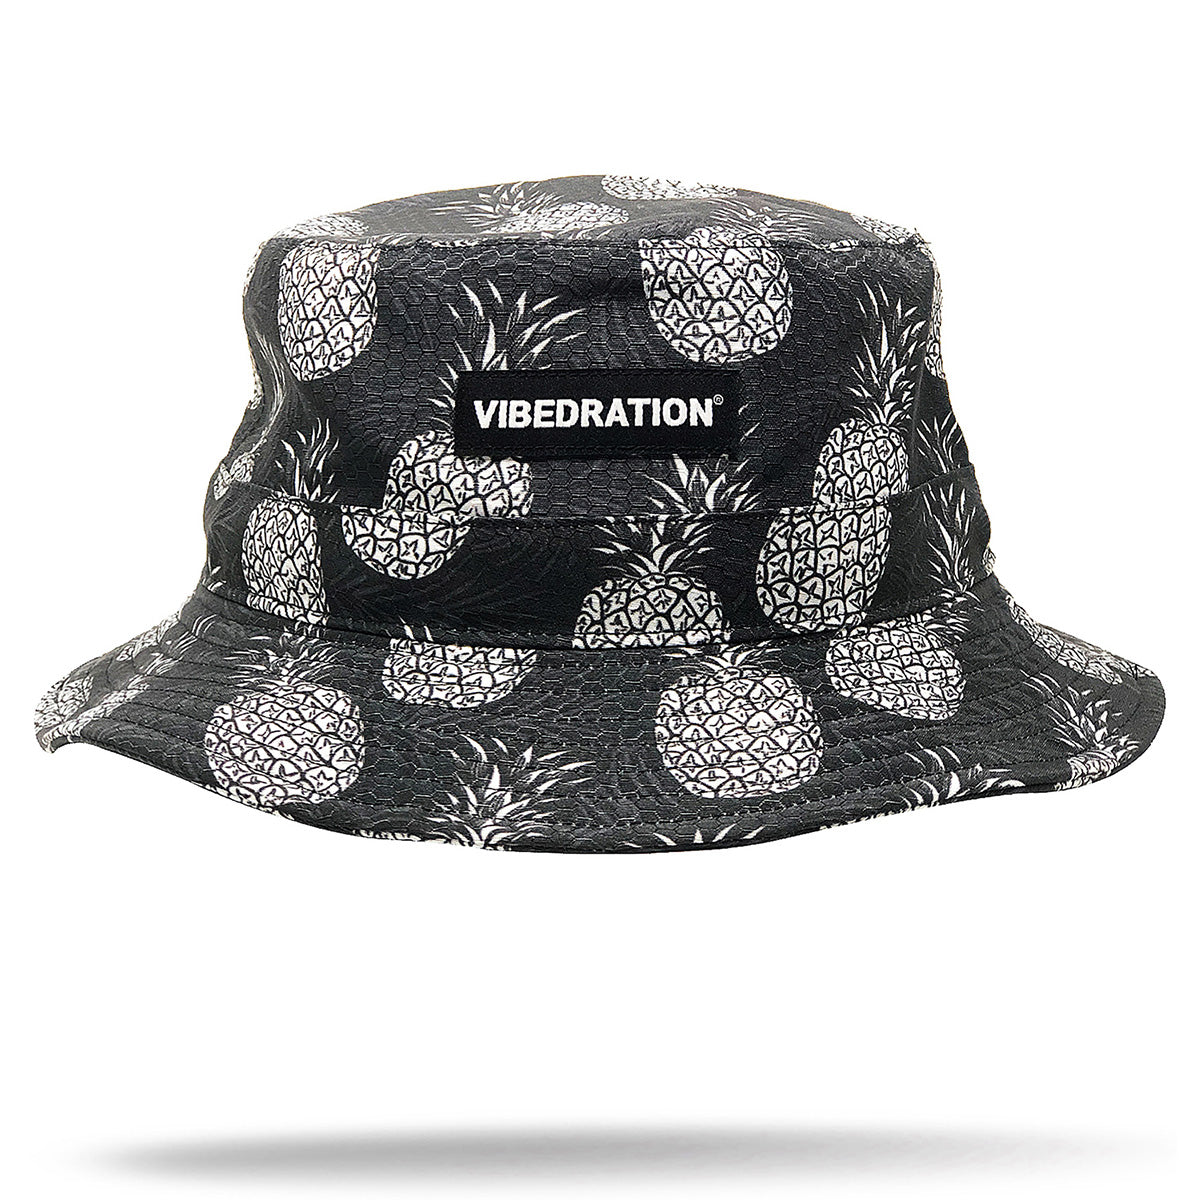 unisex black bucket hat with pineapples